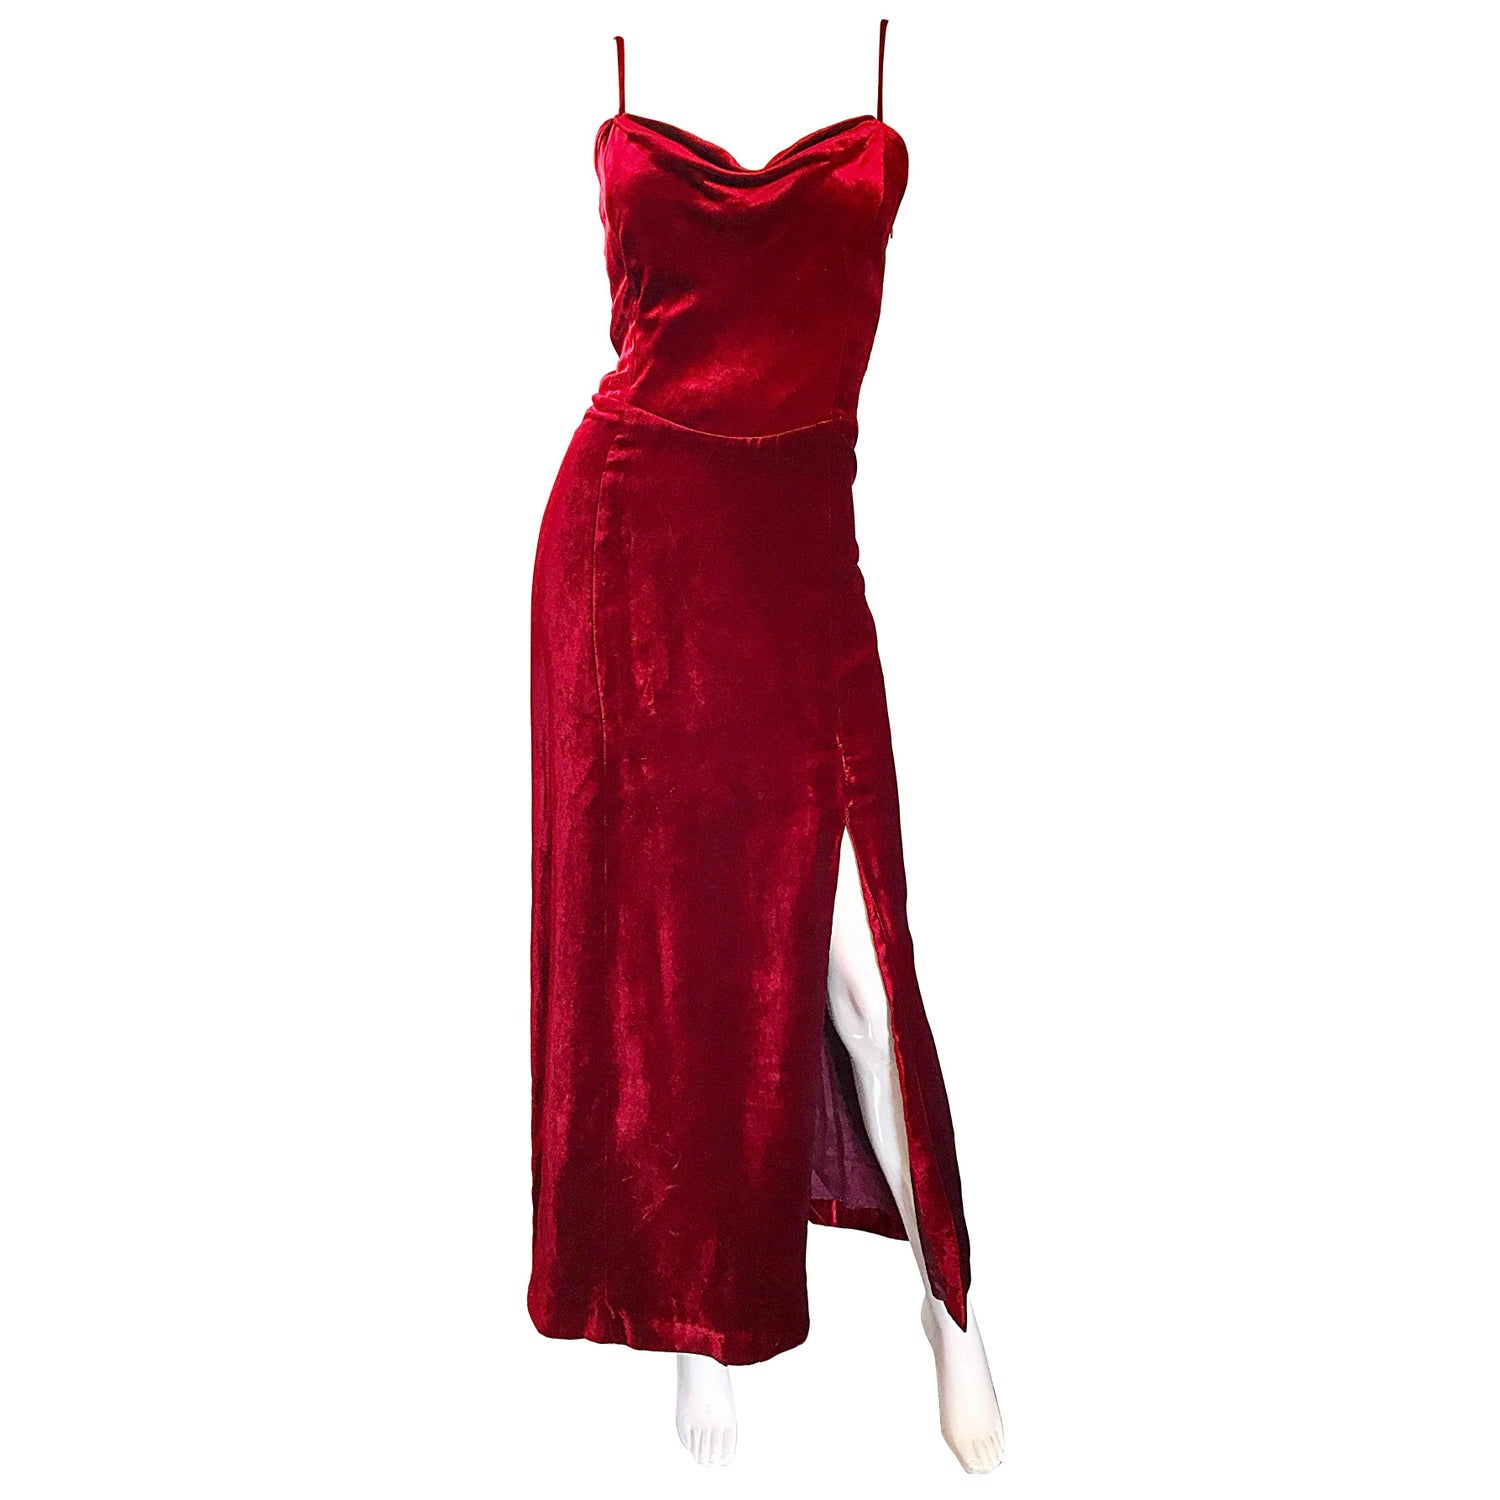 Vintage Giorgio Armani Evening Dresses and Gowns - 36 For Sale at ...